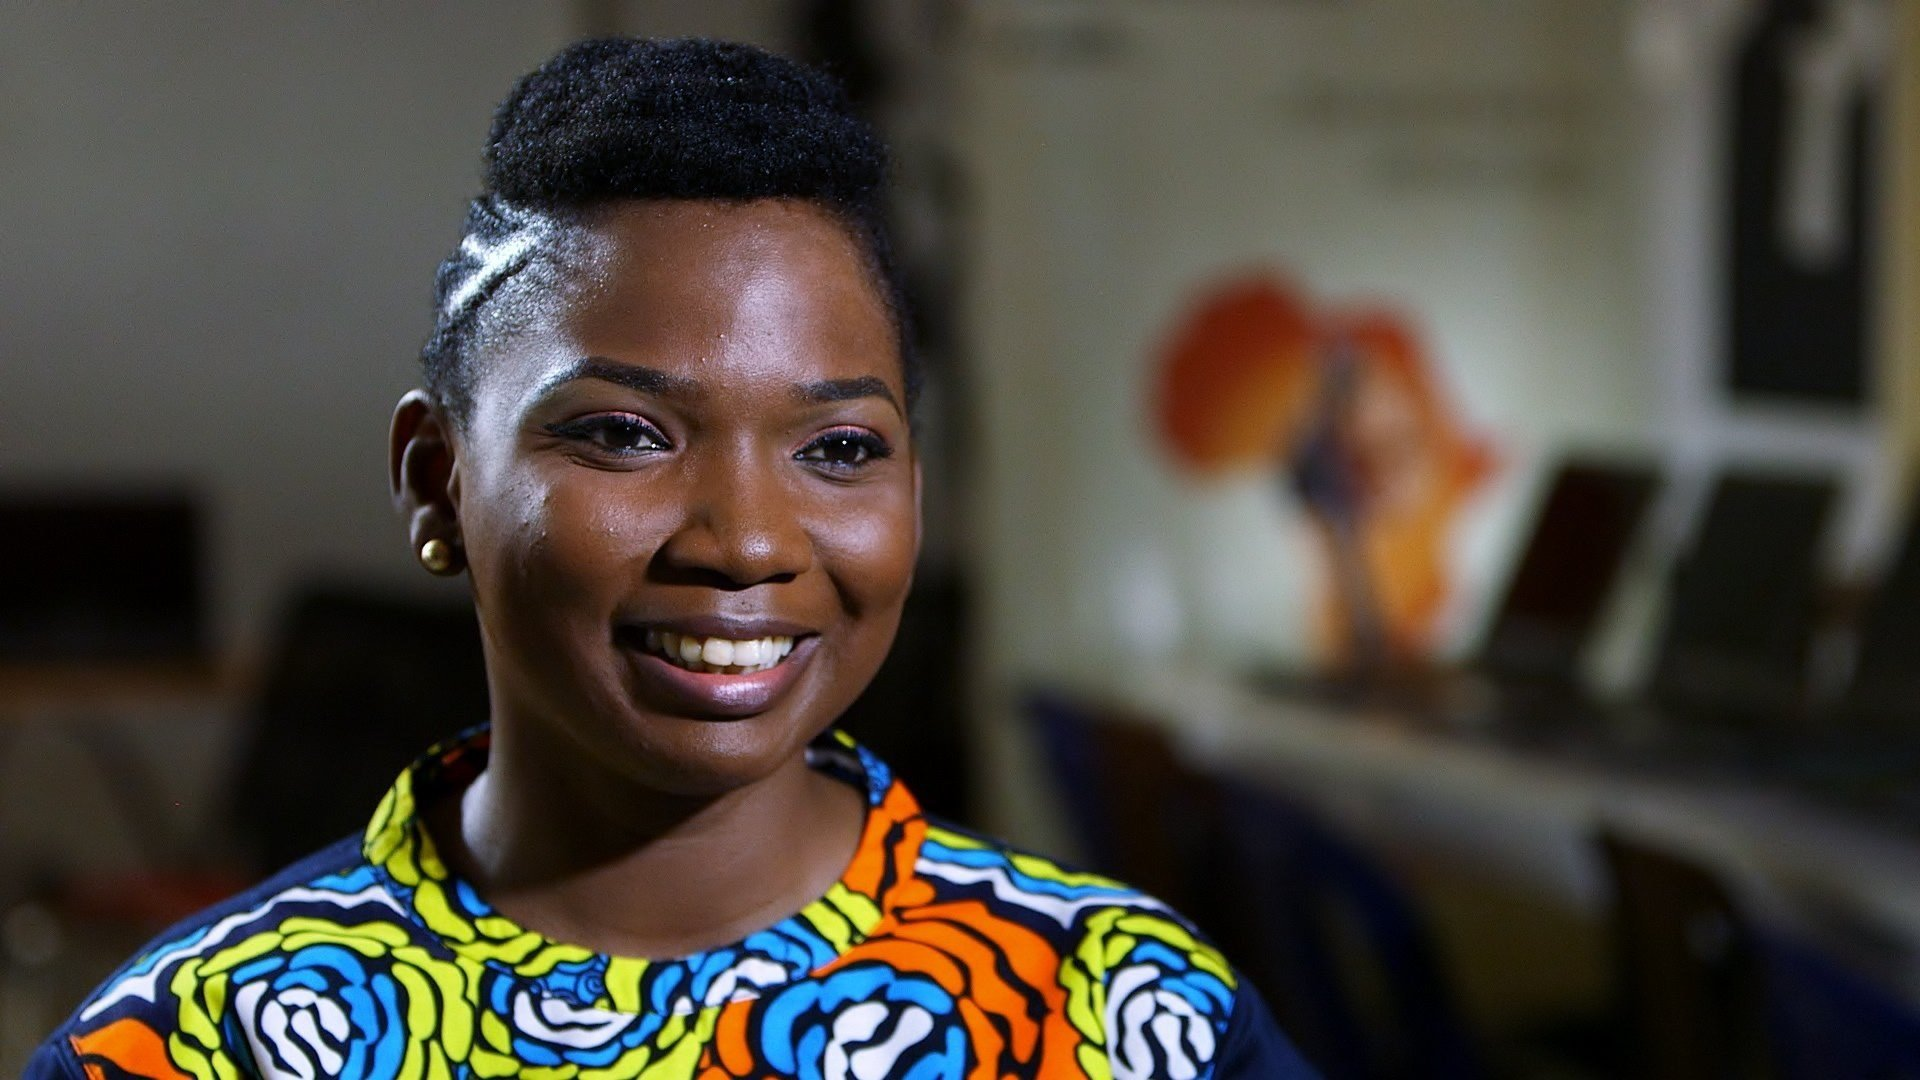 CNN Hero Abisoye Ajayi-Akinfolarin left a successful career to dedicate herself to GirlsCoding, a free program run by the Pearls Africa Foundation that seeks to educate -- and excite -- girls about computer programming.